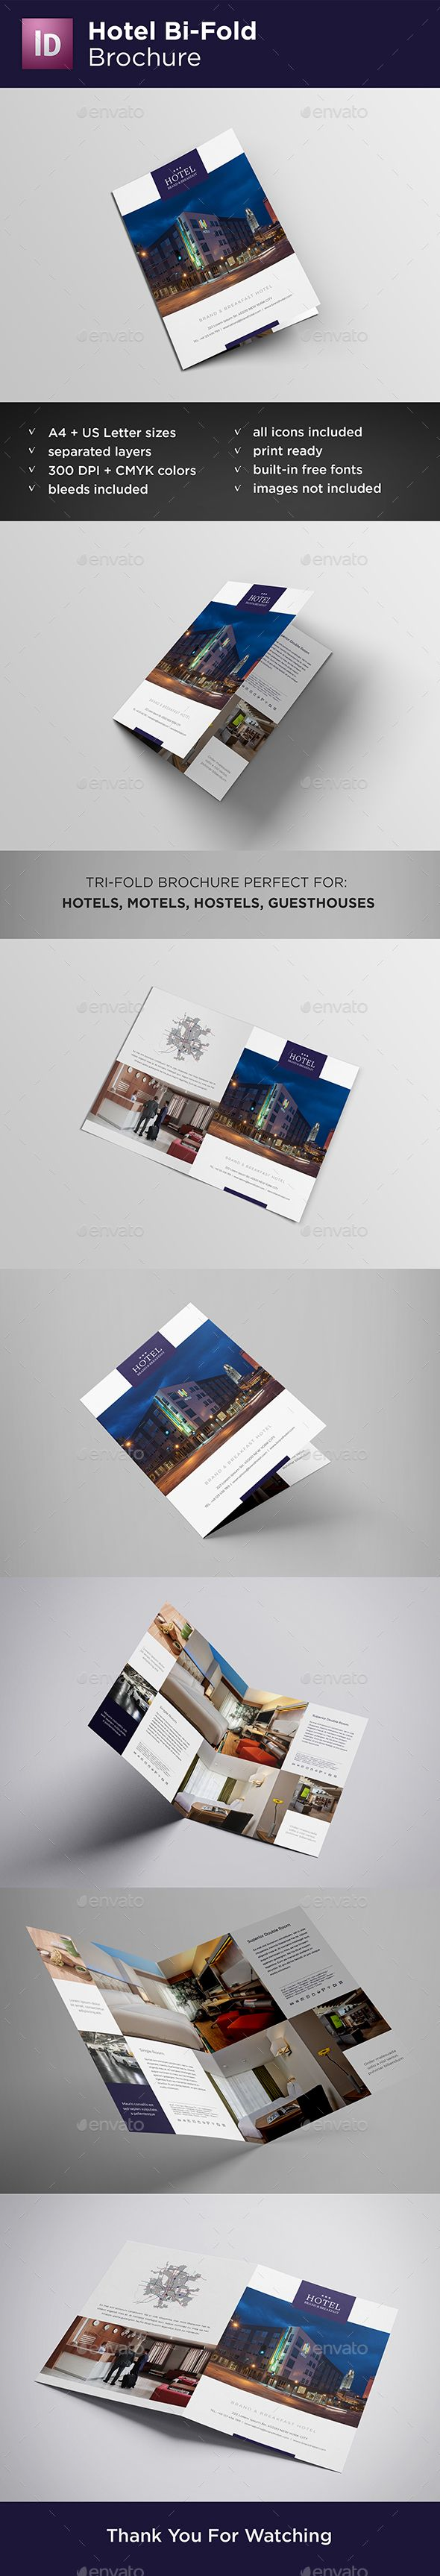 Hotel BiFold Brochure — InDesign INDD #interior #catalog • Available ...